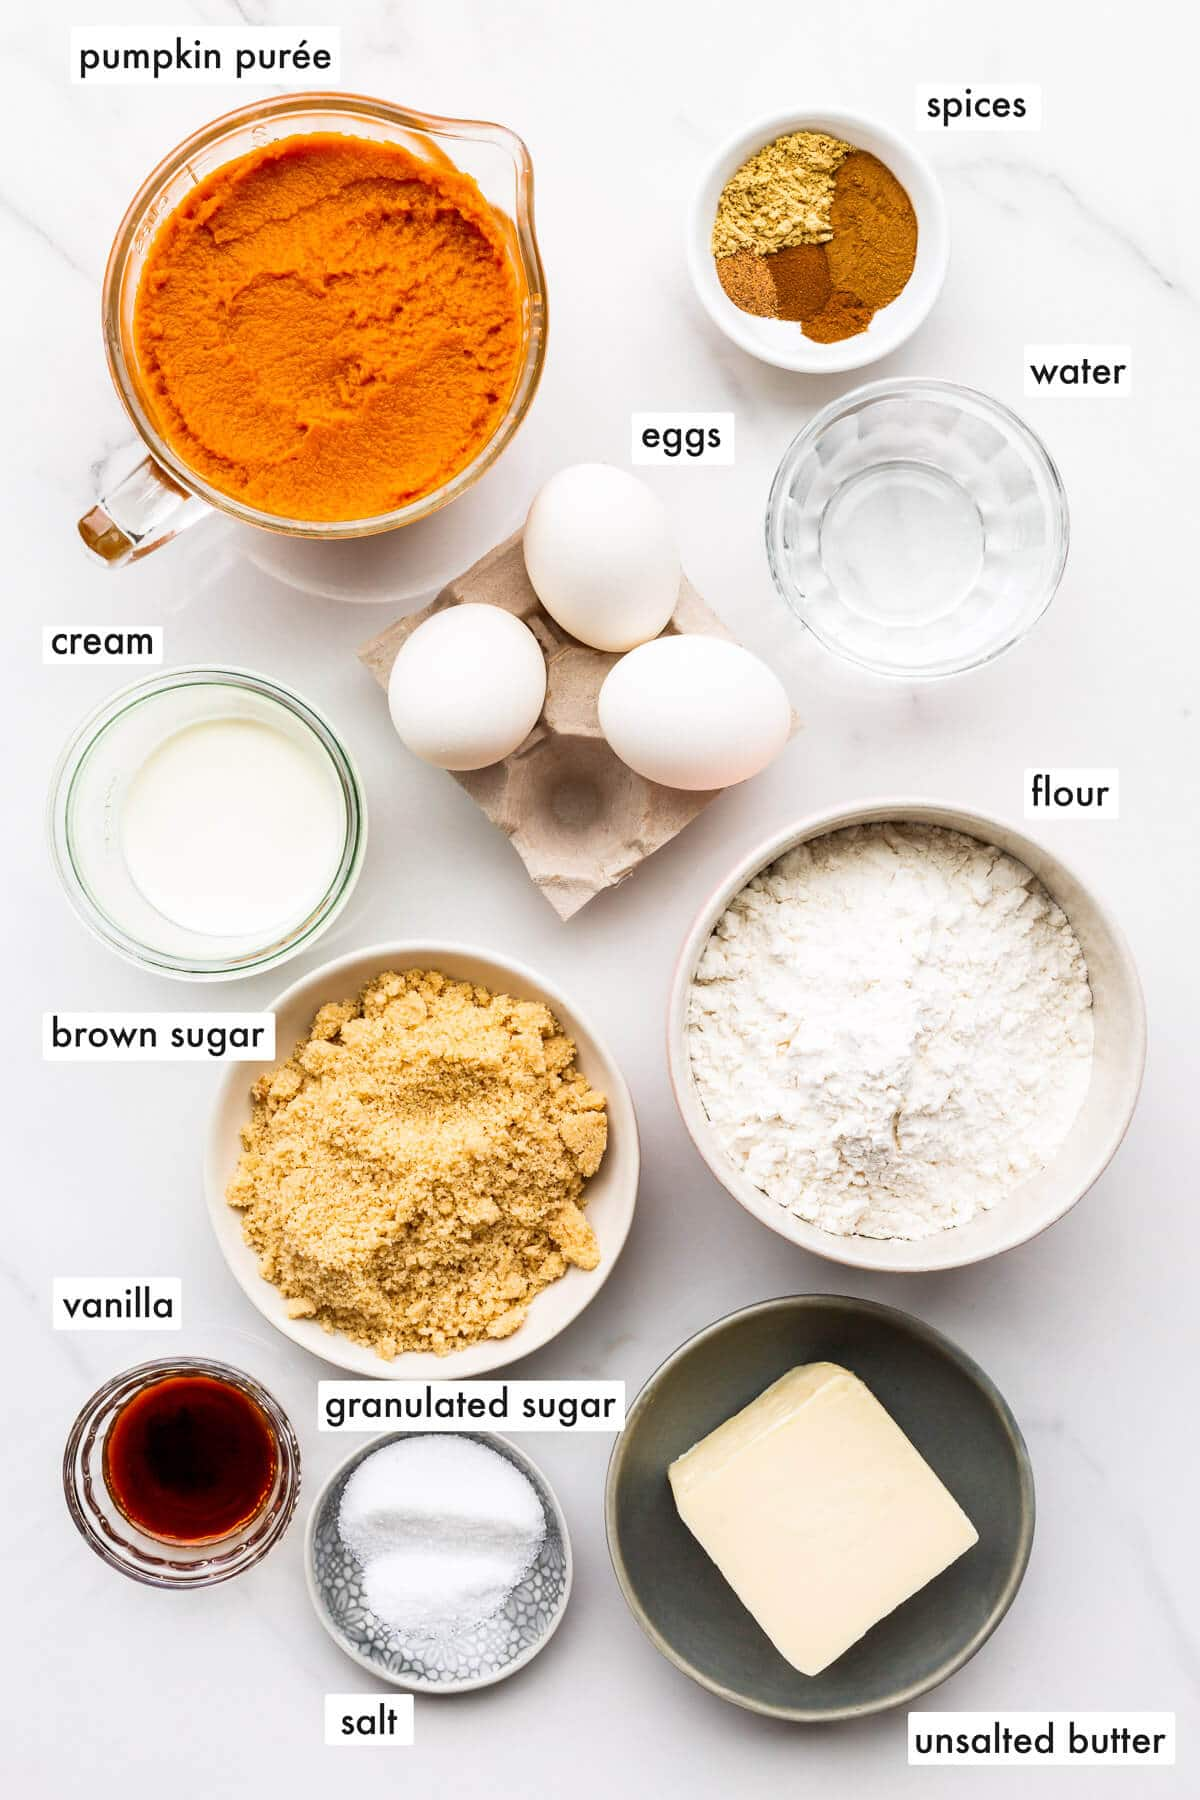 Ingredients to make a pumpkin pie without evaporated milk, measured out and ready to bake with.